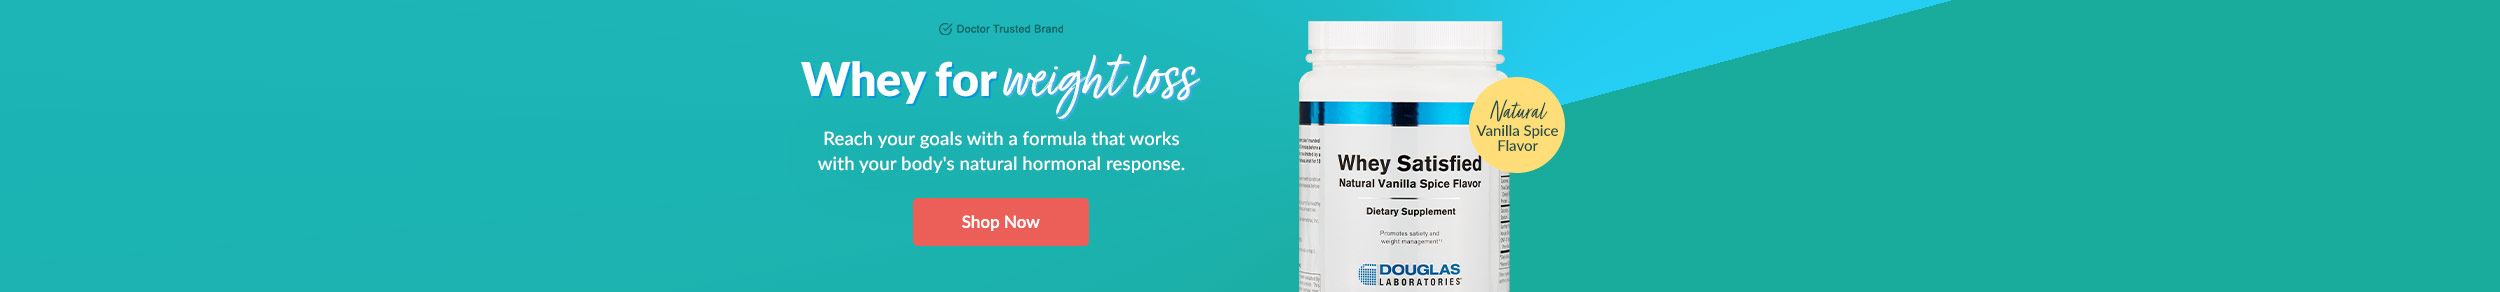 Doctor Trusted Brands: Whey Satisfied by Douglas Labs: Whey for weight loss - Reach your goals with a formula that works with your body's natural hormonal response. SHOP NOW